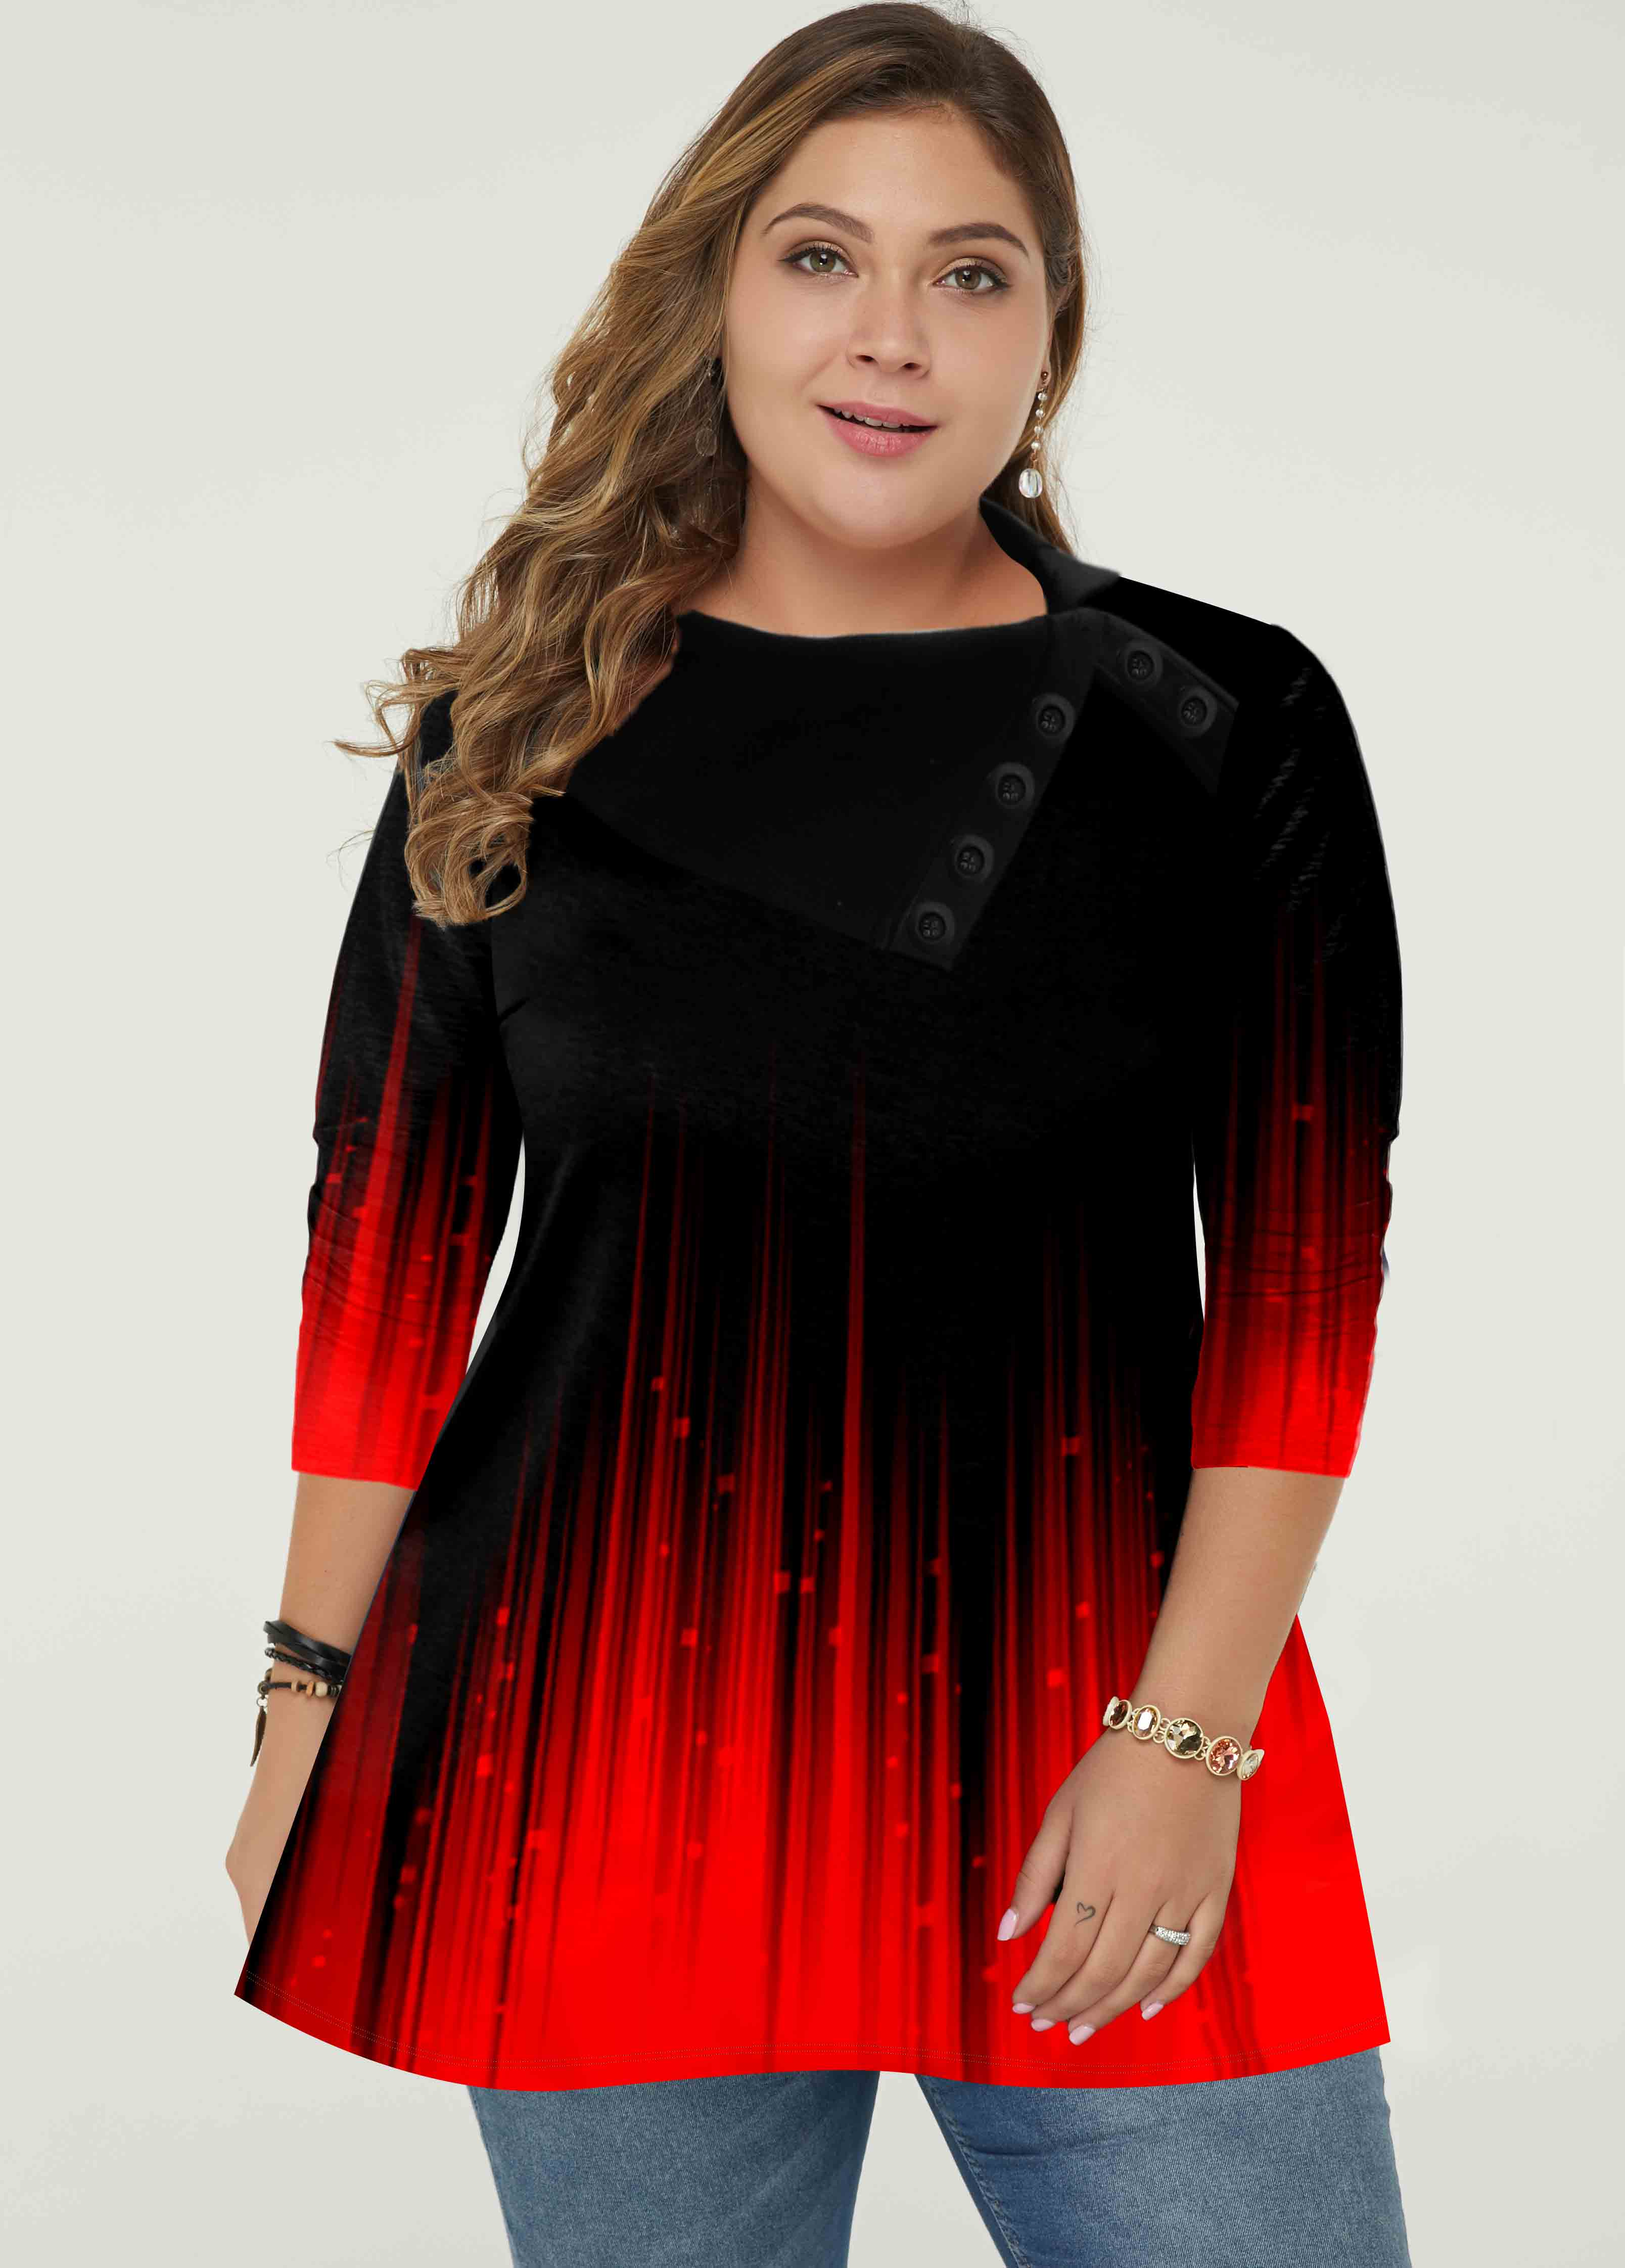 Plus Size Ombre Long Sleeve Tunic Top